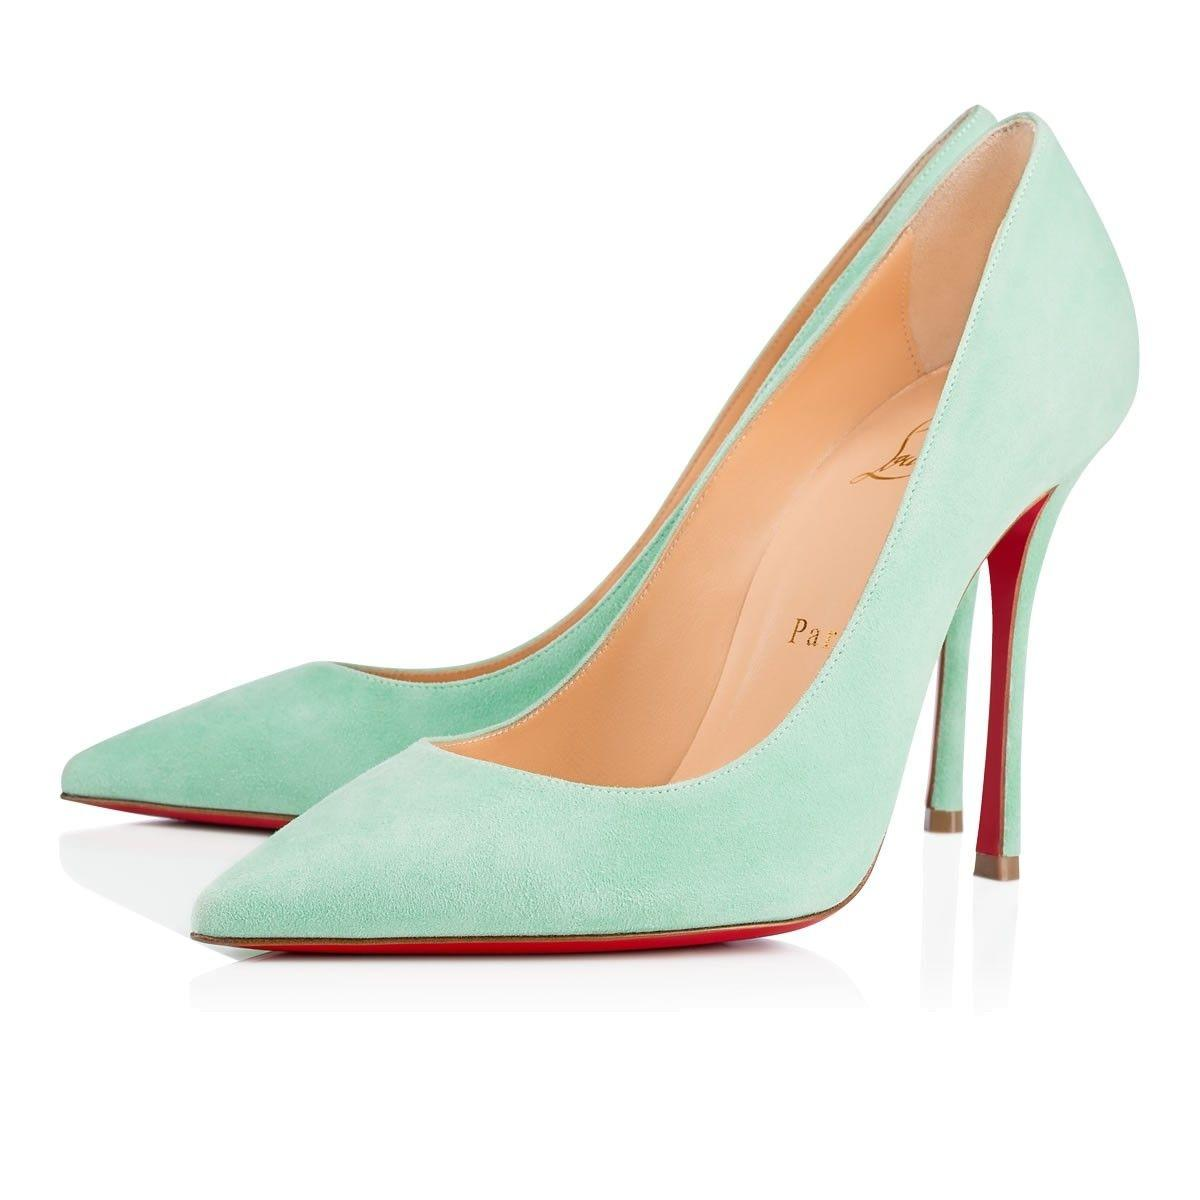 Christian Louboutin Blue Classic Decoltish 100mm Mint Suede Leather Point-toe Heels Pumps Size EU 37.5 (Approx. US 7.5) Regular (M, B)